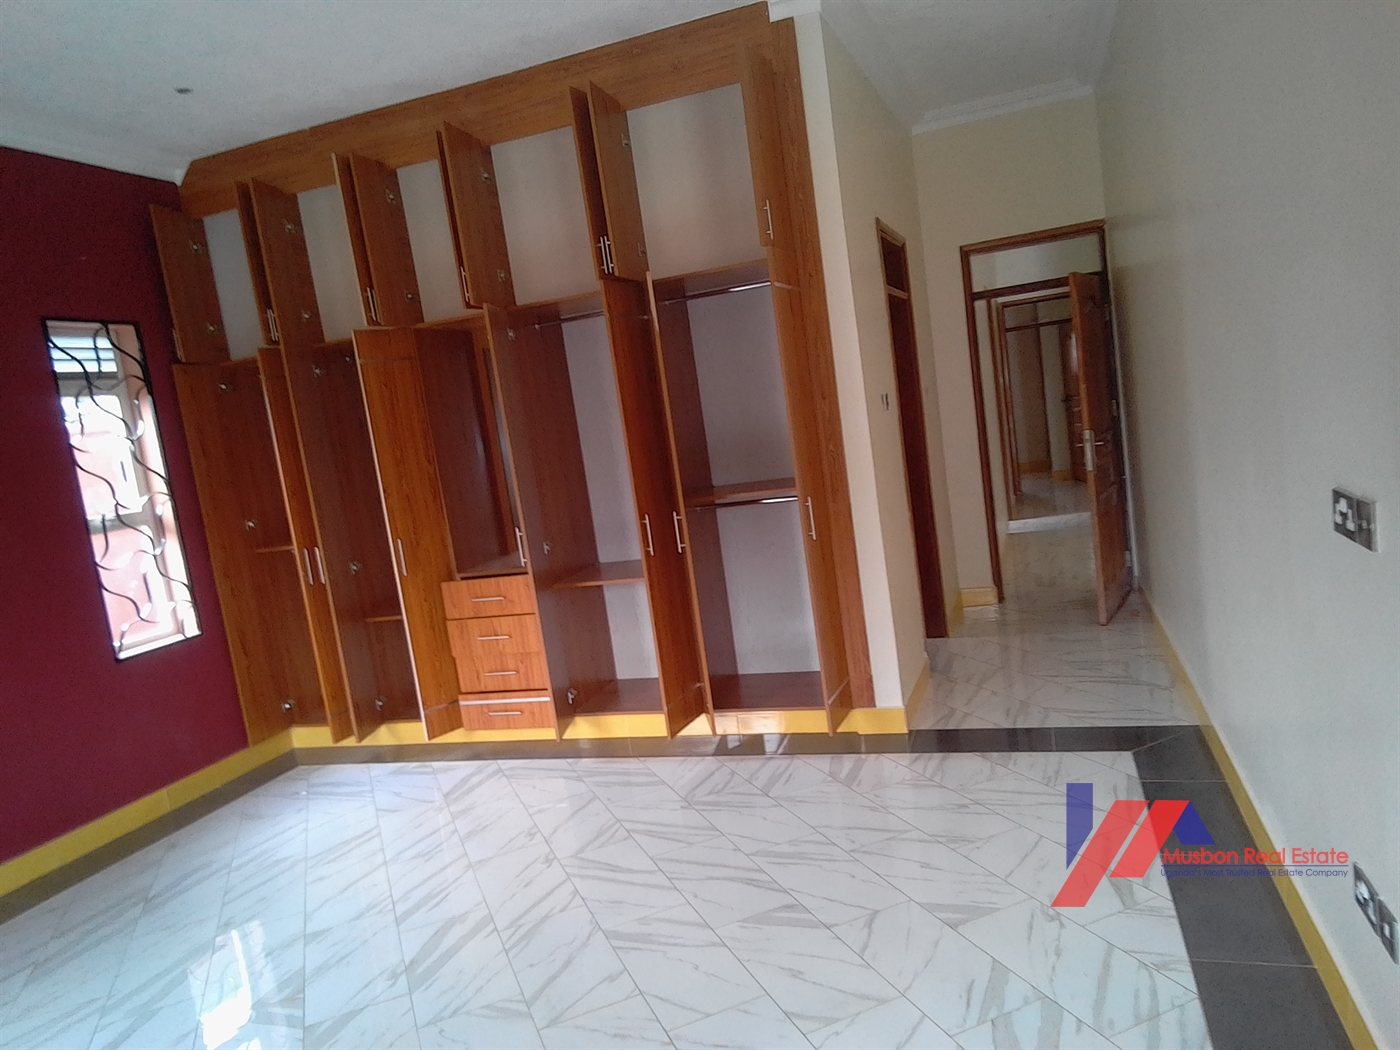 Apartment block for sale in Bukoto Kampala